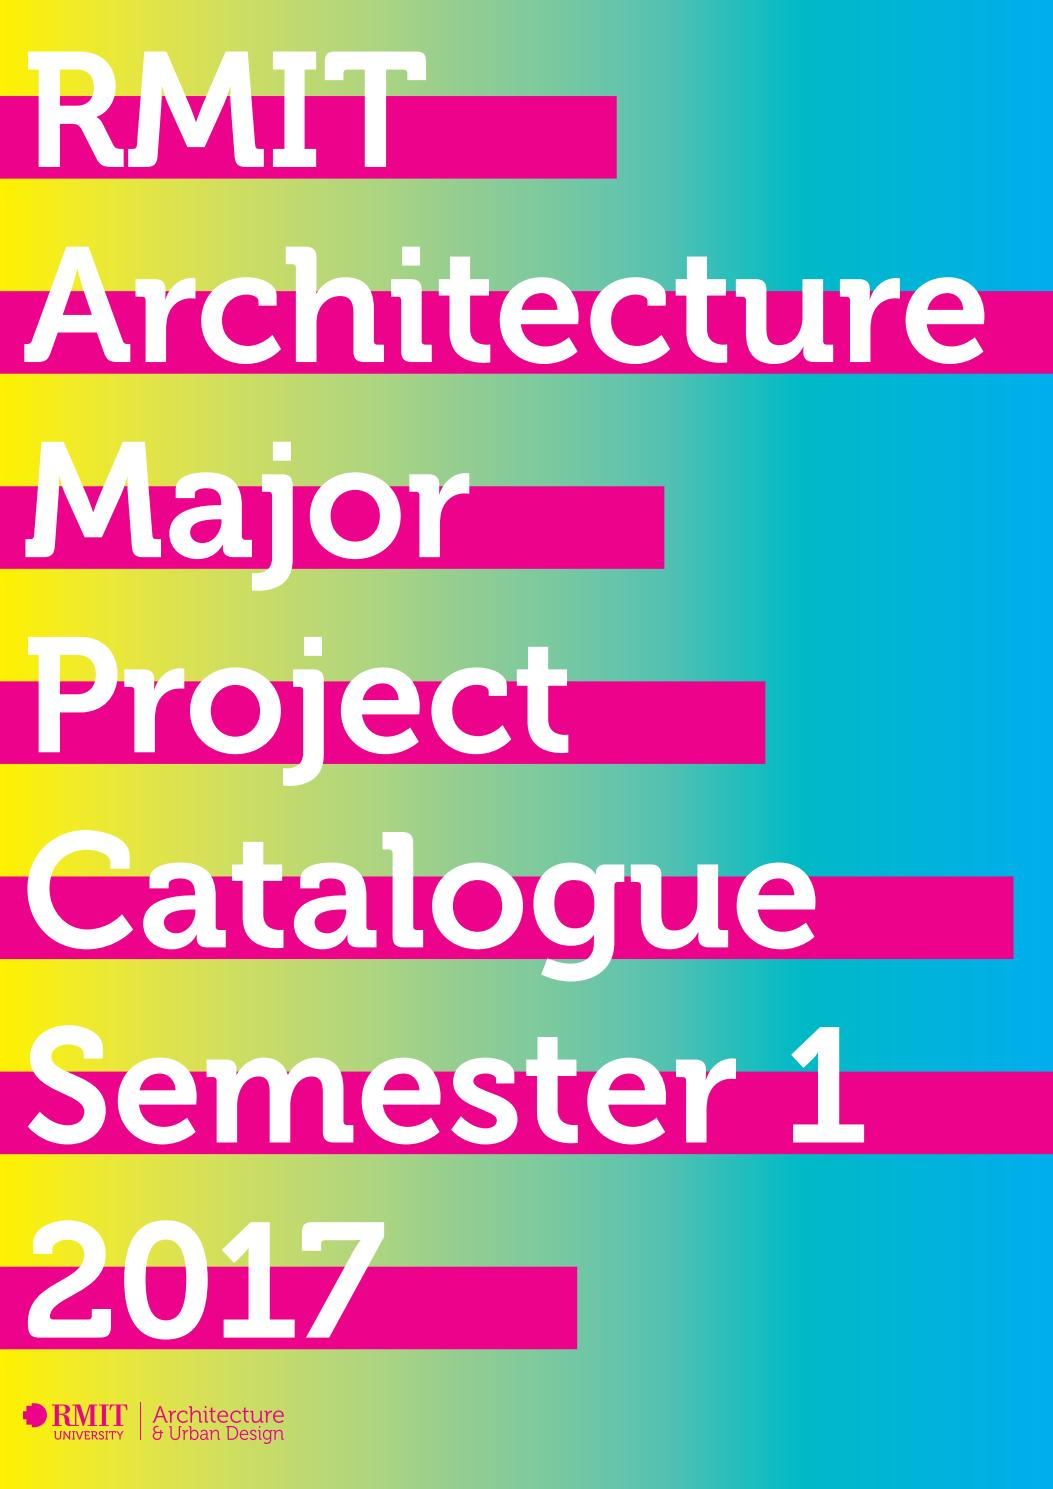 RMIT Architecture & Urban Design Major Project Catalogue Semester 1